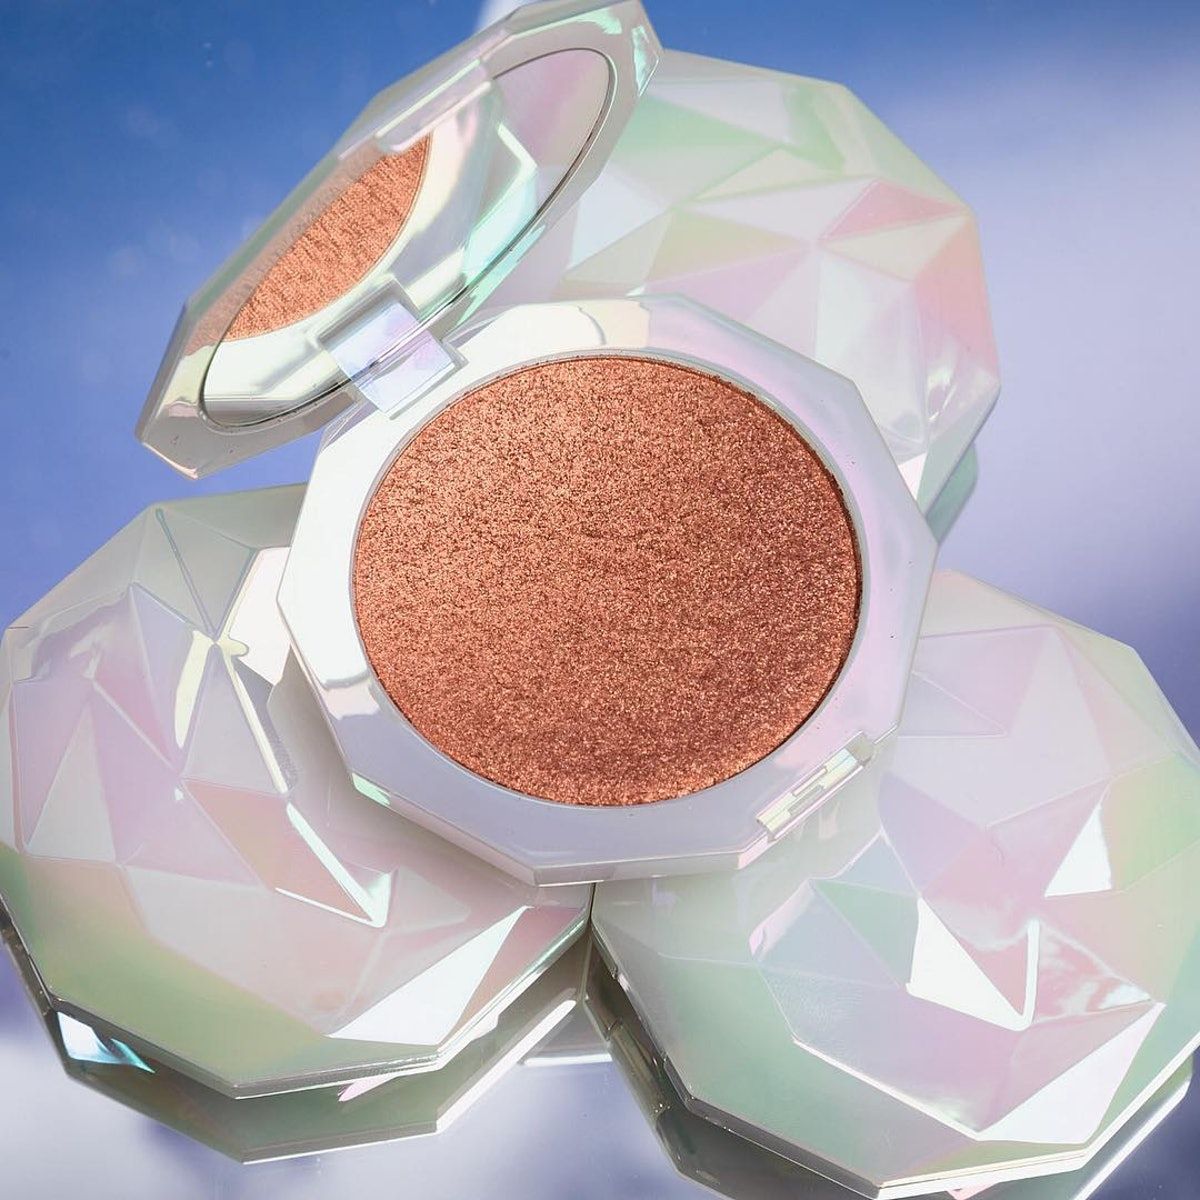 When To Buy Lunar Beauty's New Moon Prism Powders Because These 'Sailor Moon' Inspired Highlighters Shine Like Stars